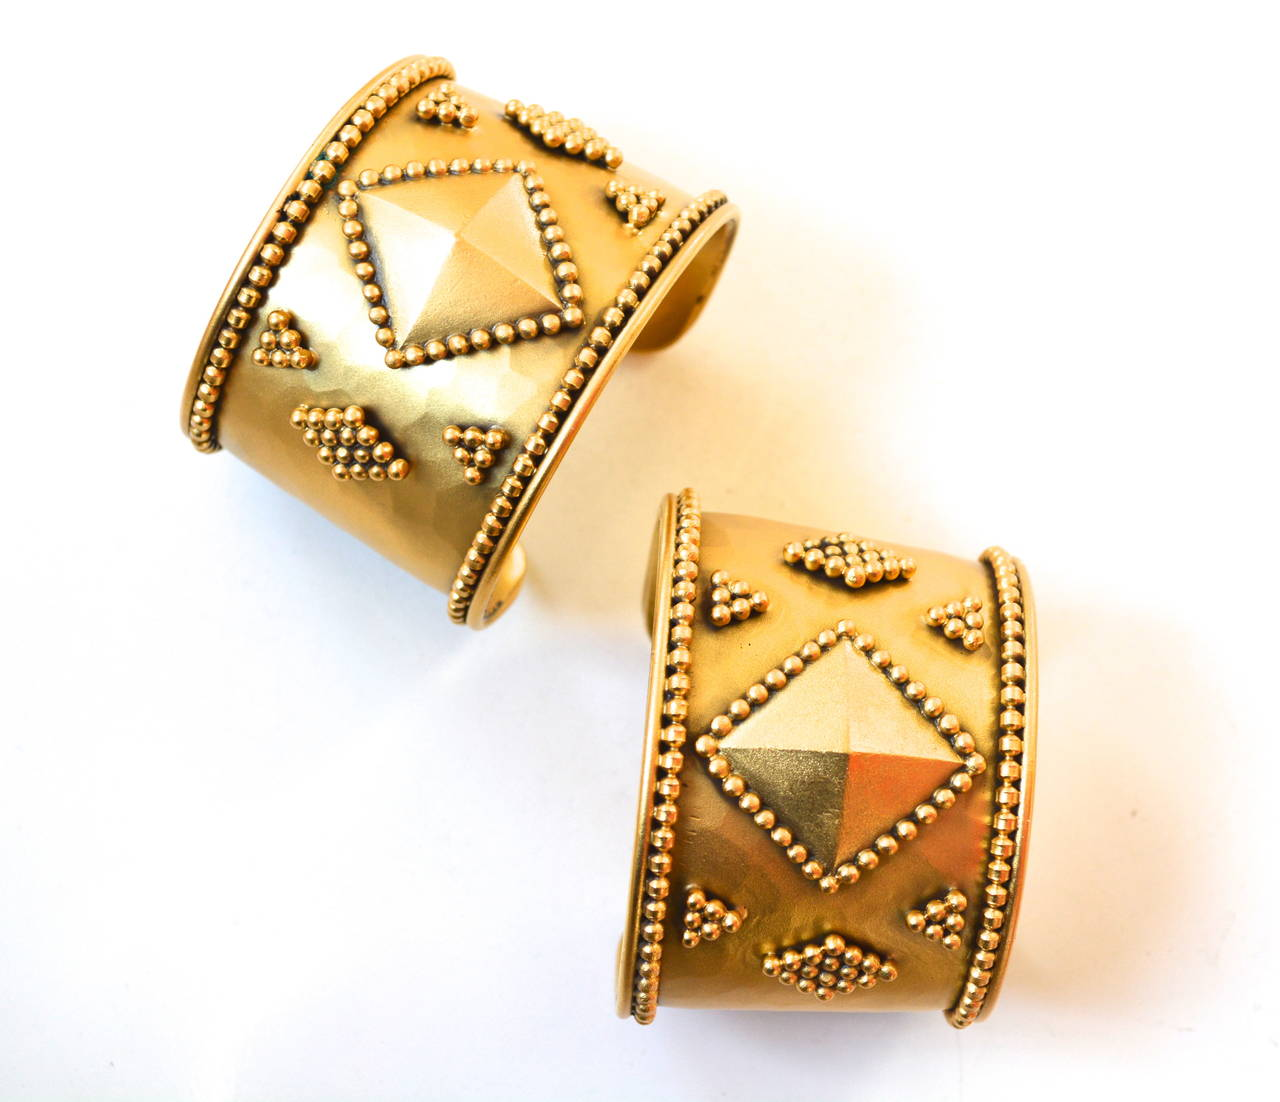 Lovely gilt detailed geometric cuffs by Yves Saint Laurent.  The pair are decorated with golden ball designs and a central diamond shape. Signed underneath.  These amazing cuffs are a powerful statement.   Circa 1980s (Could be a bit earlier or